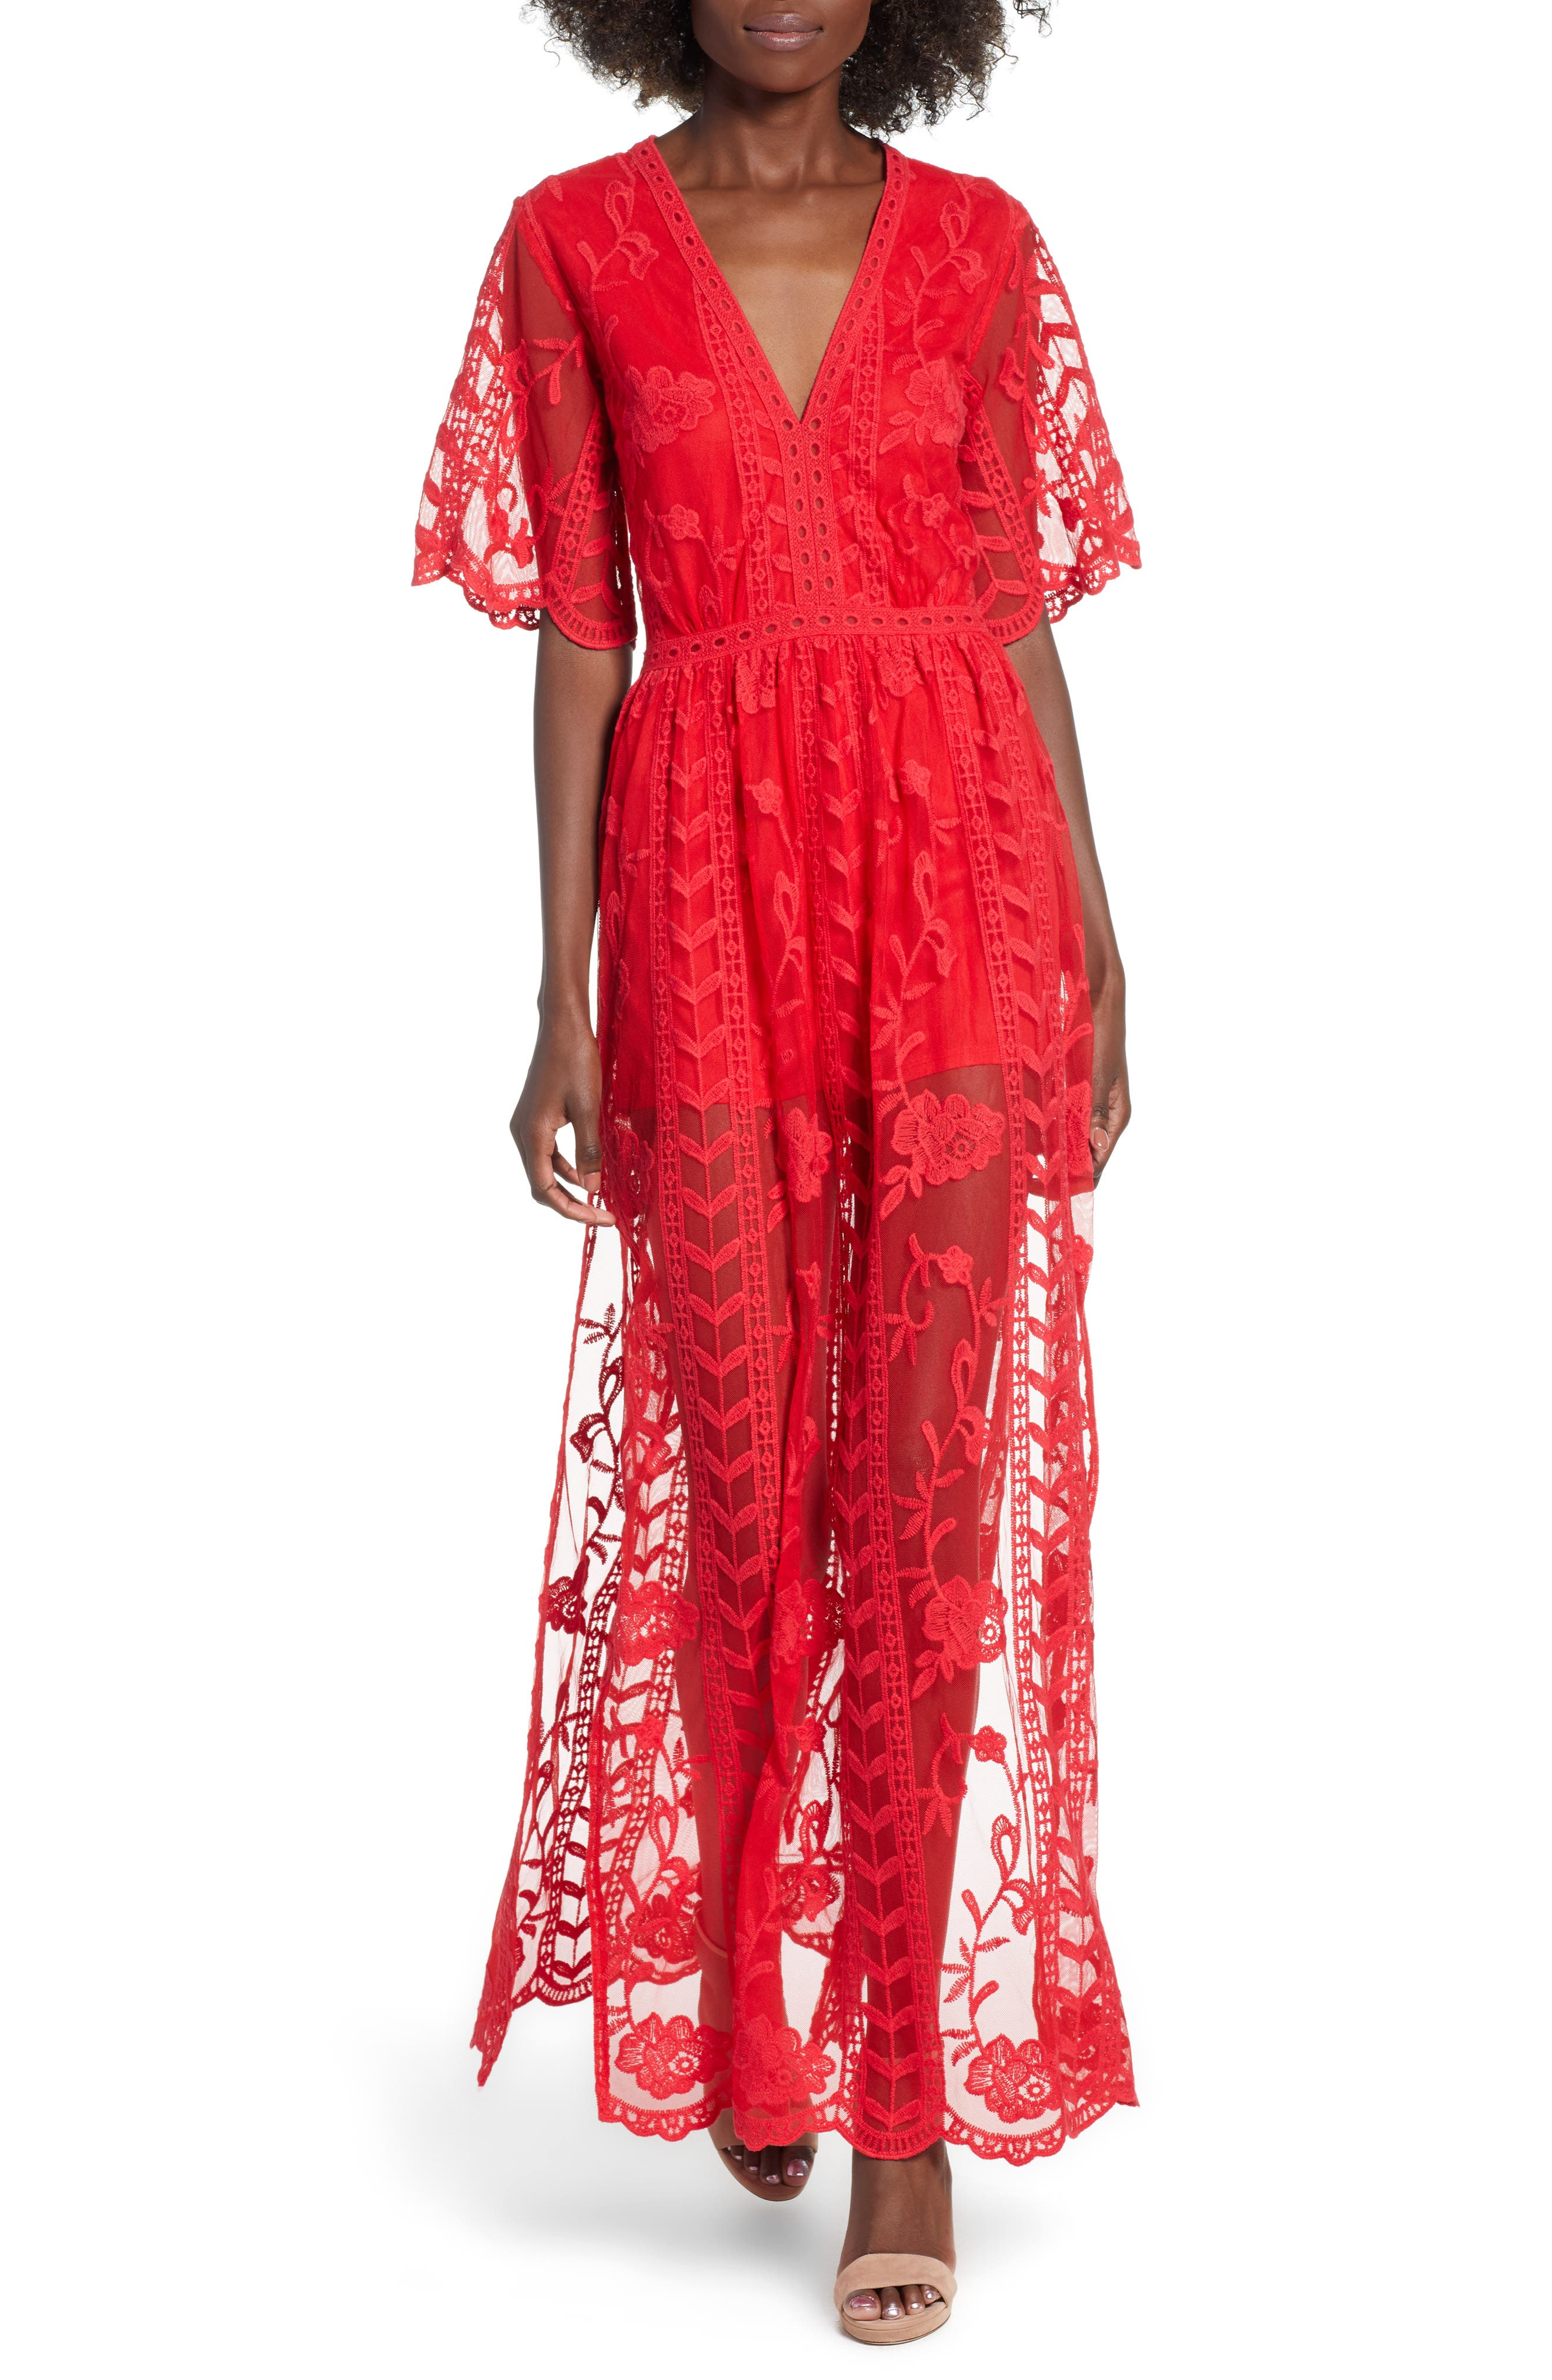 SOCIALITE, Lace Overlay Romper, Main thumbnail 1, color, RED LIPSTICK